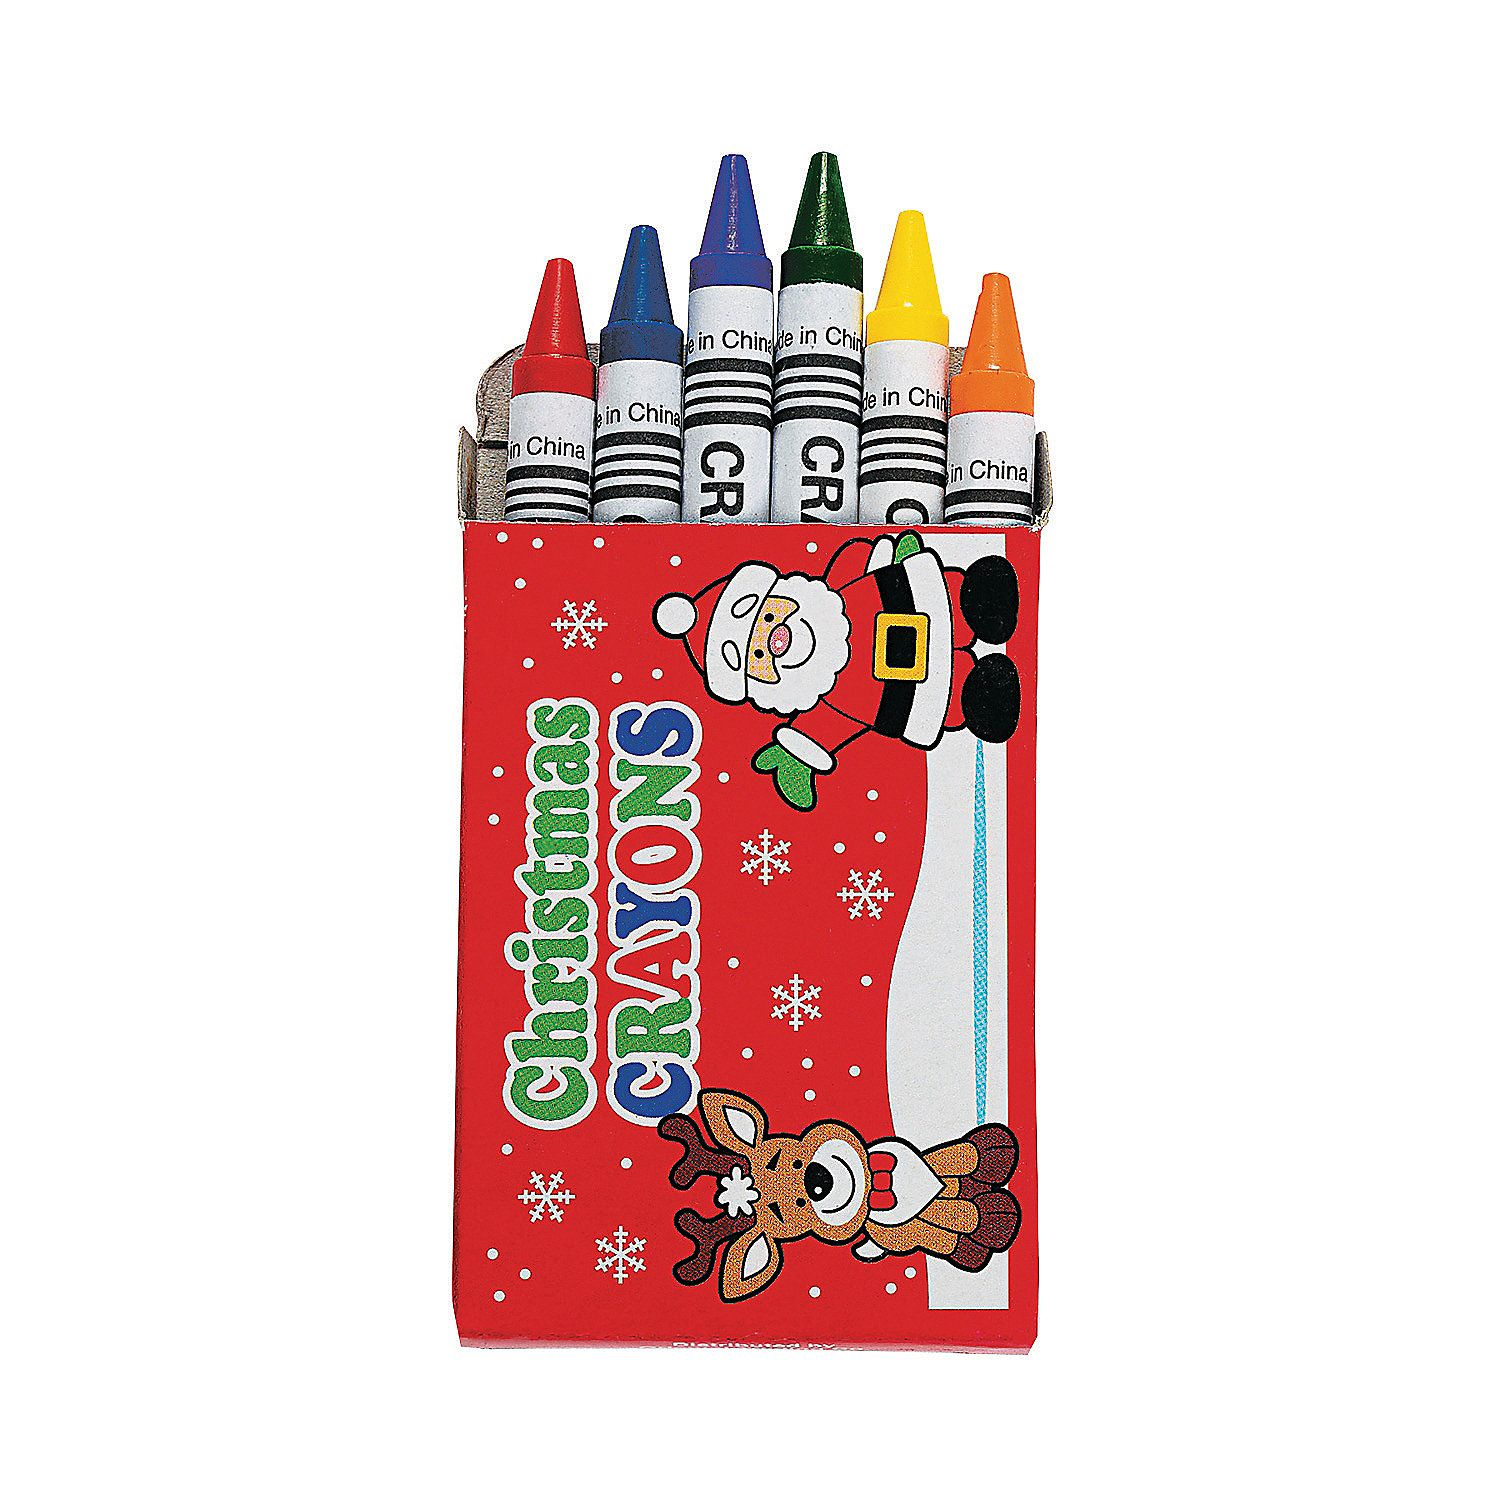 6 Color Holiday Crayons 48 Boxes Oriental Trading Christmas Coloring Books Christmas Crafts Christmas Stationery